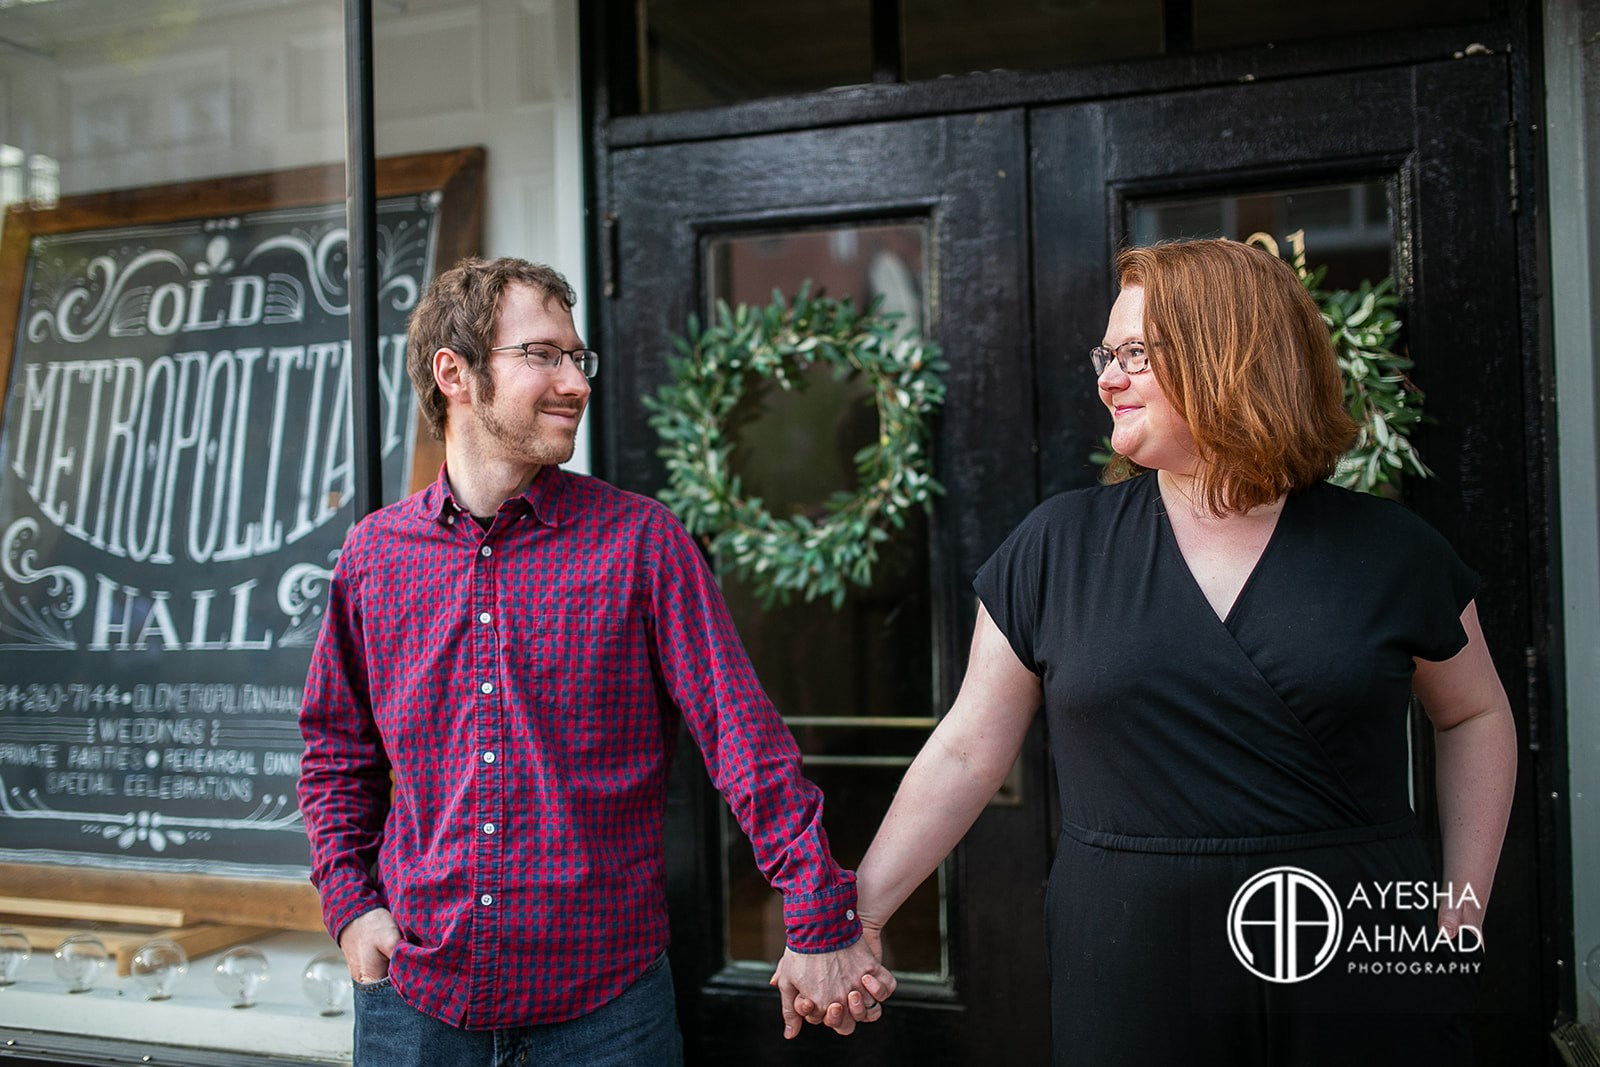 Jen and cameron hold hands in front of Old Metropolitan Hall during couples session in Downtown Charlottesville Ayesha Ahmad Photography